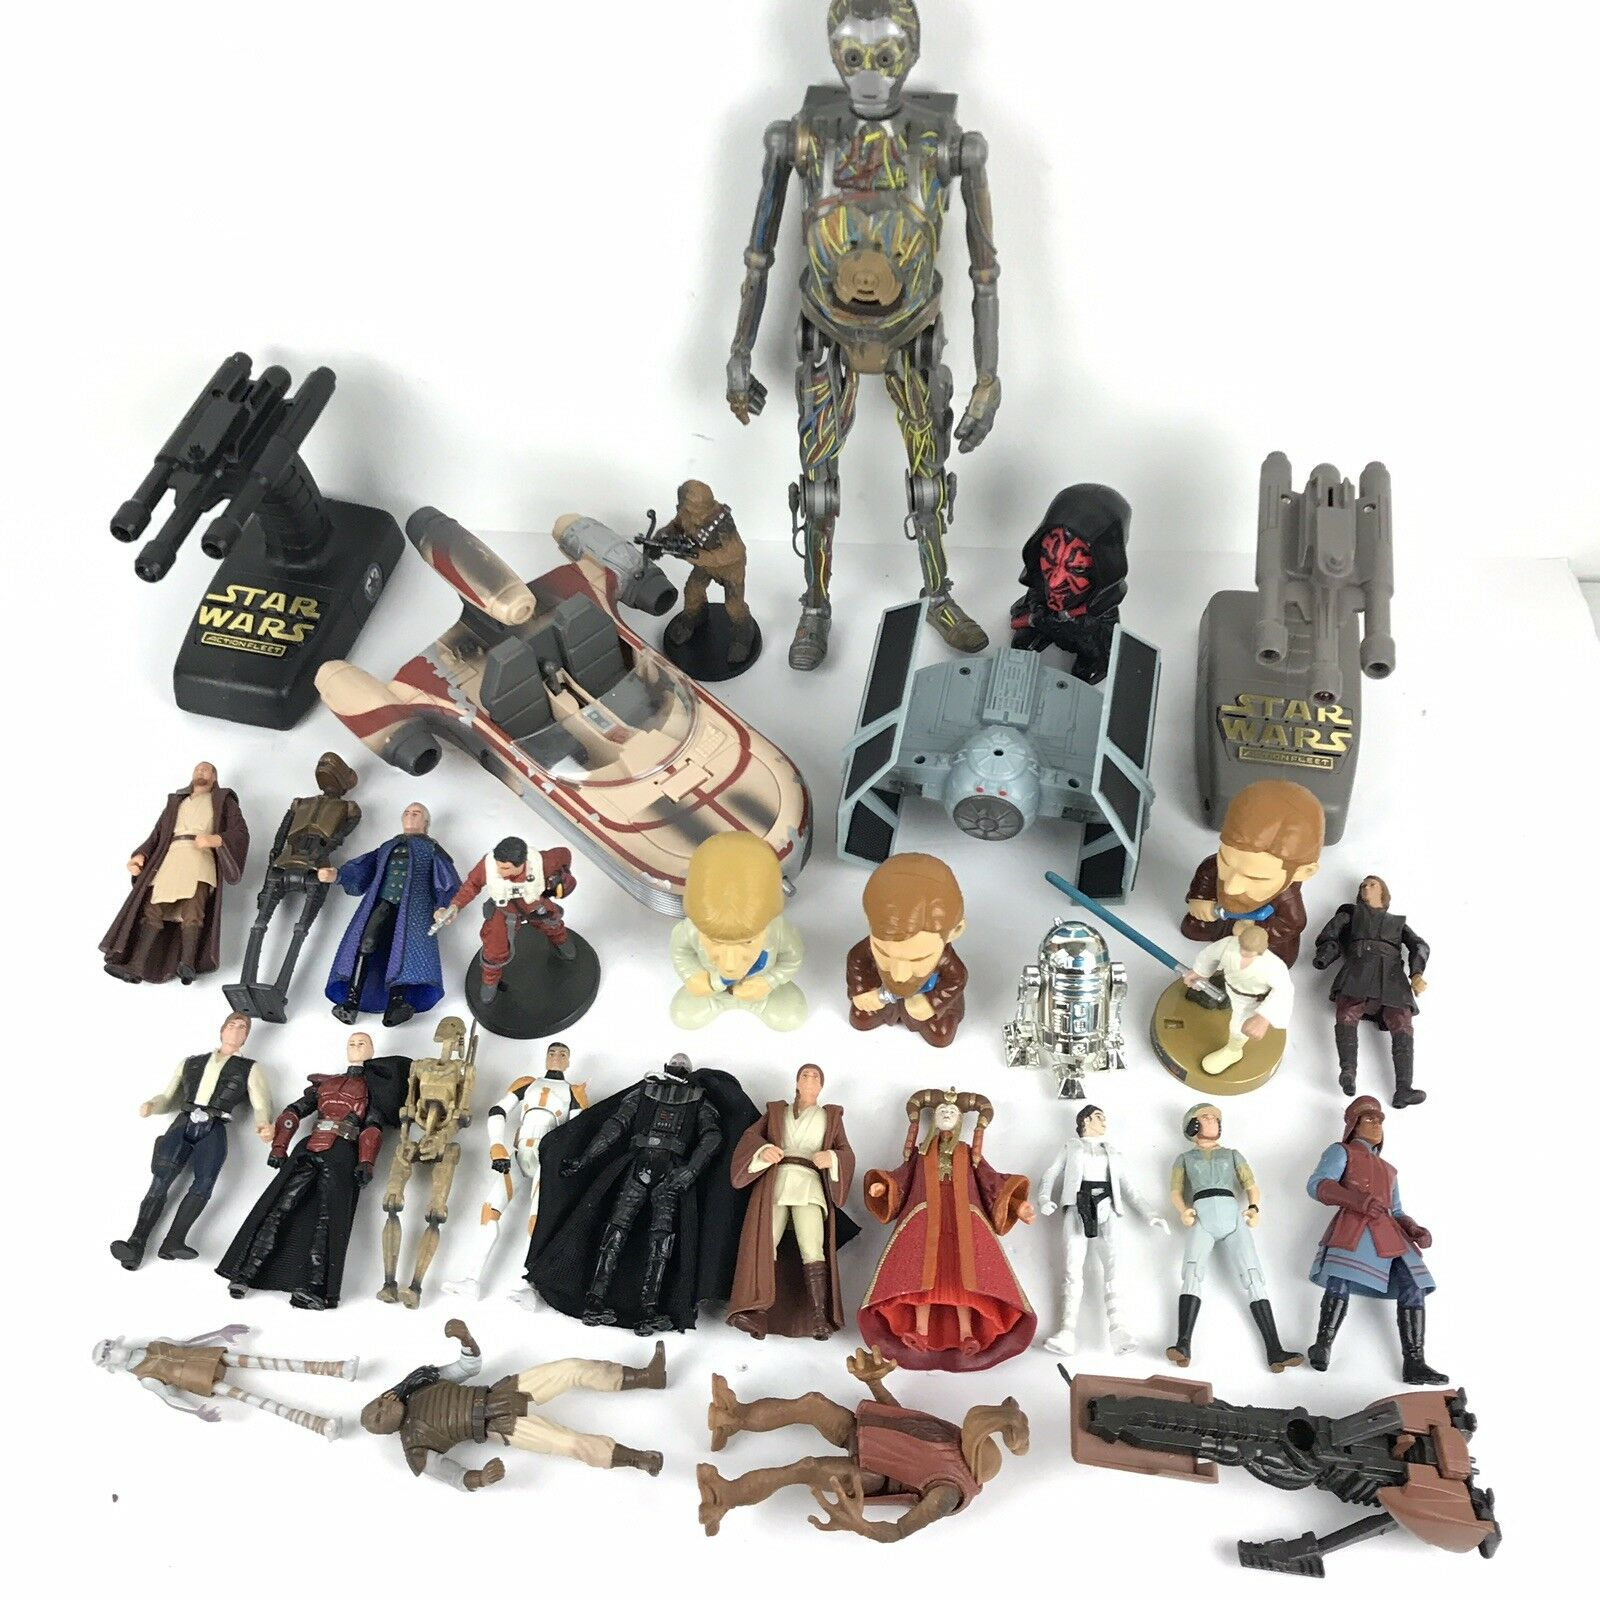 Star Wars Action Figure And Vehicle Lot 31 Pieces